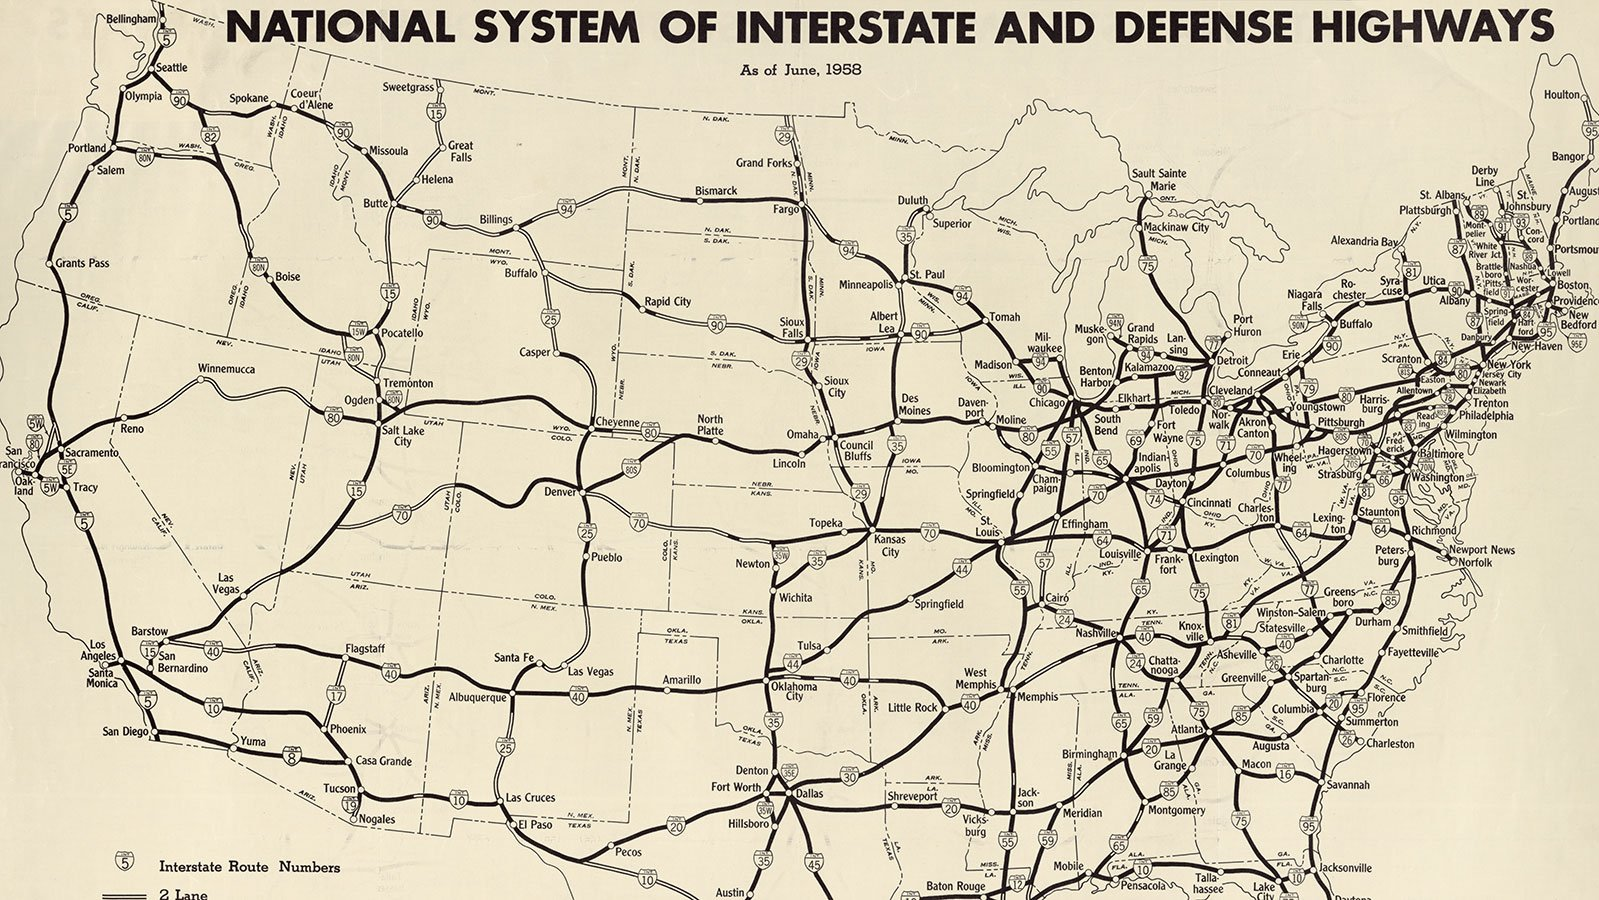 National system of interstate and defense highways, June 1958.